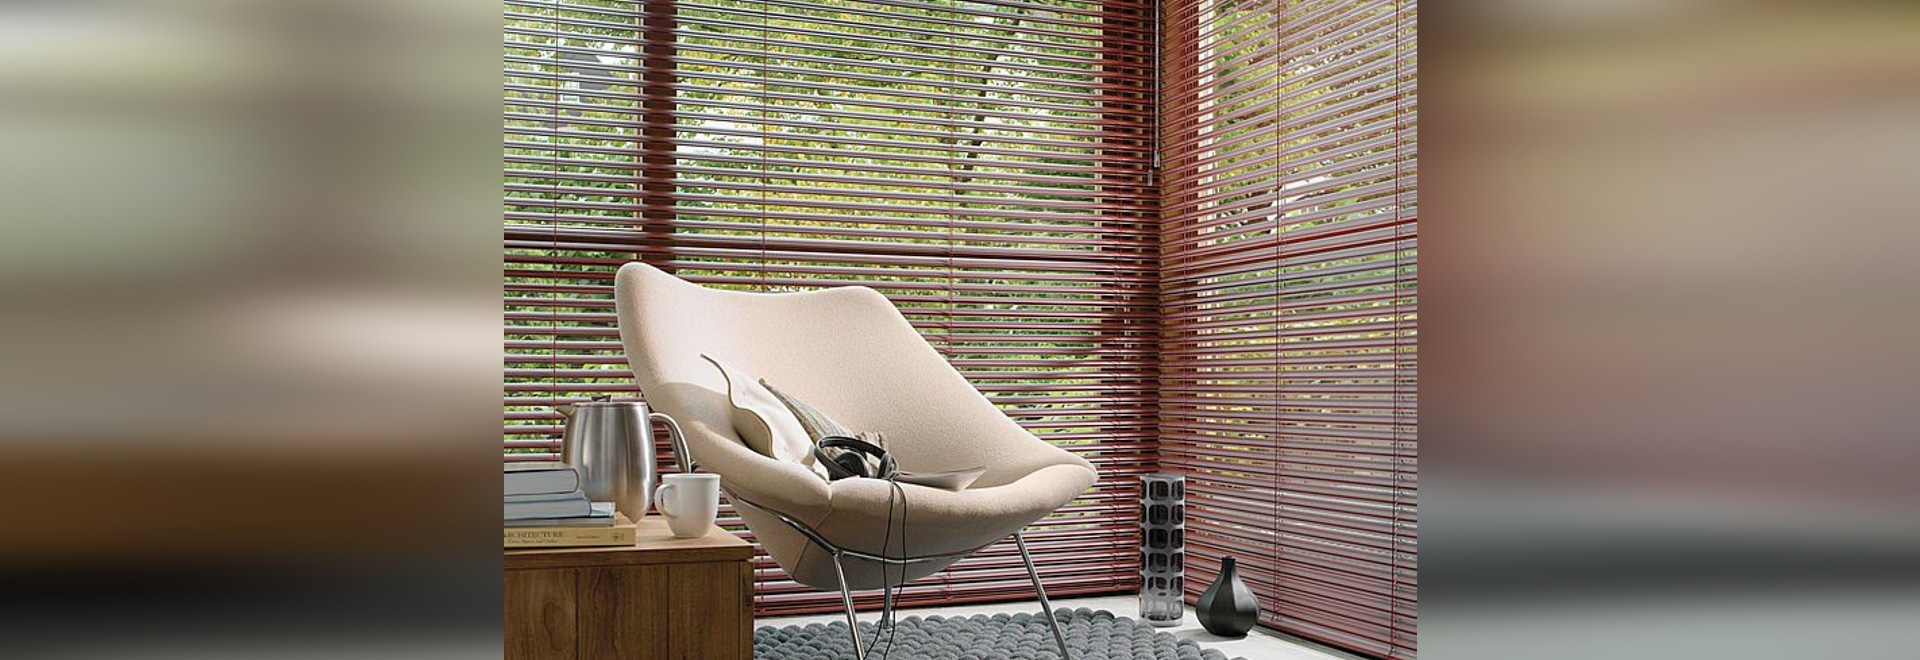 VENETIAN BLIND FOR INTERIORS WITH 16-25 mm